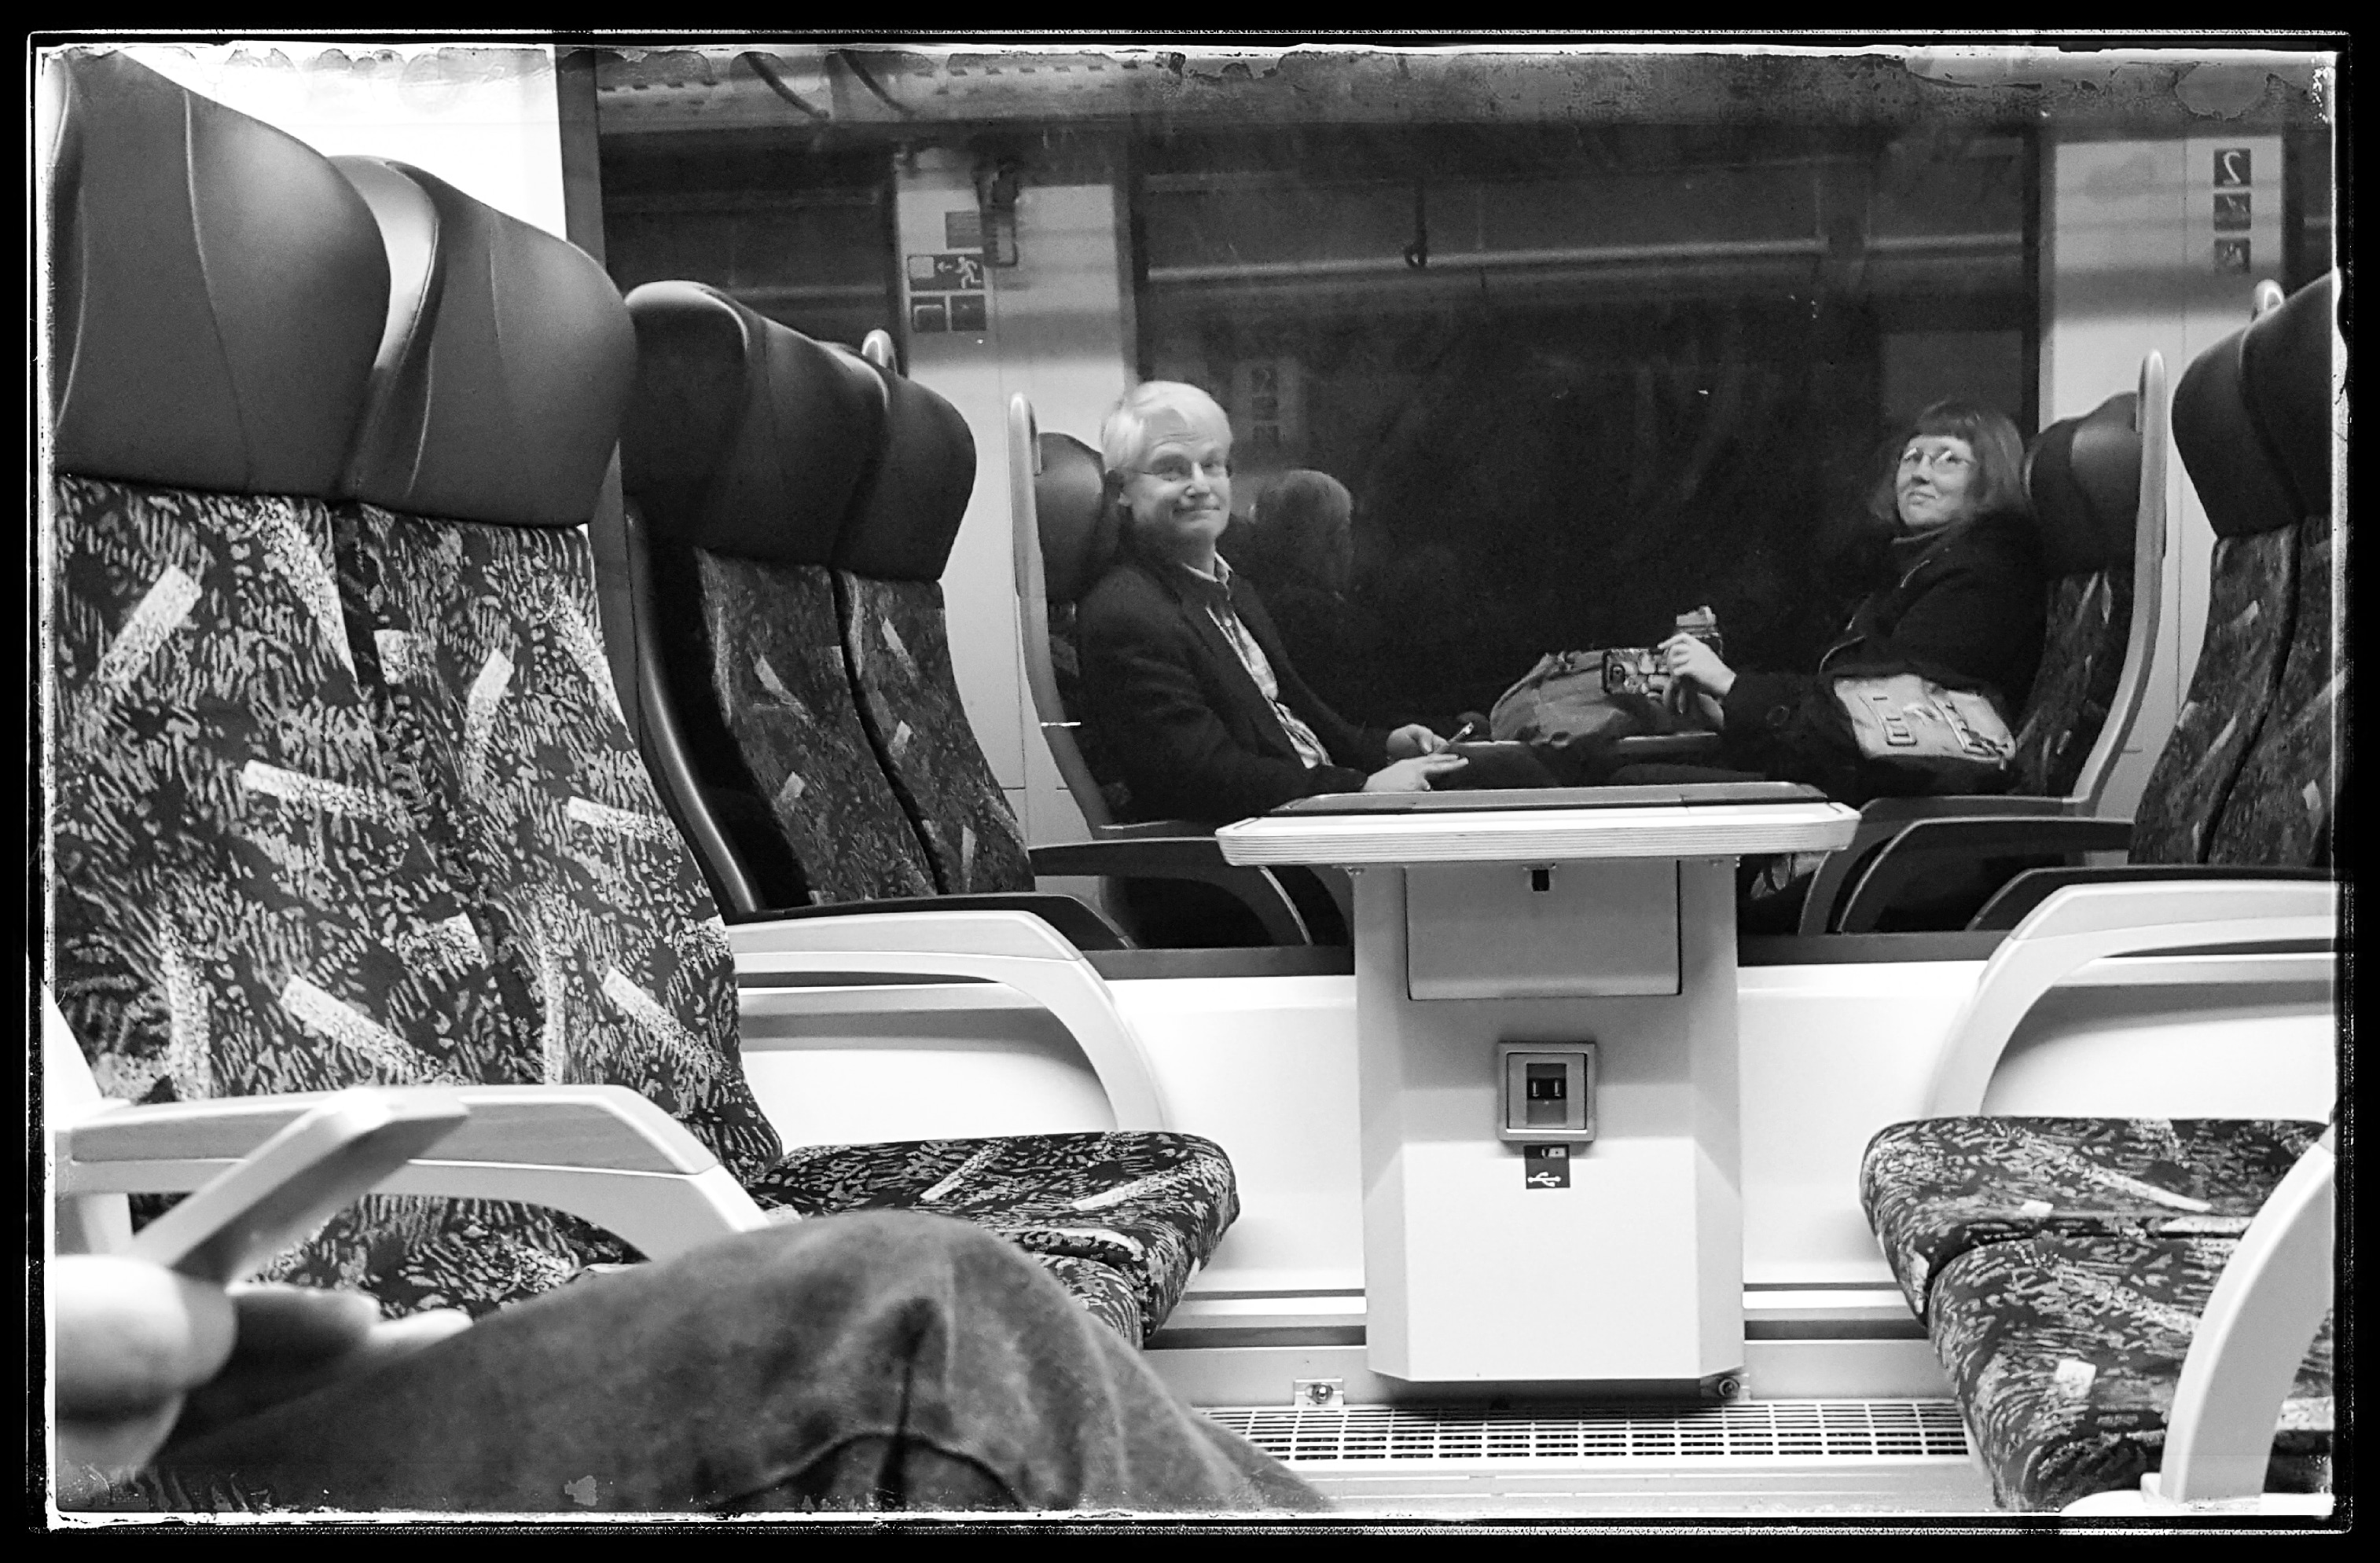 On the regional train. So tired, but almost home. Photo by Dragonfly Leathrum